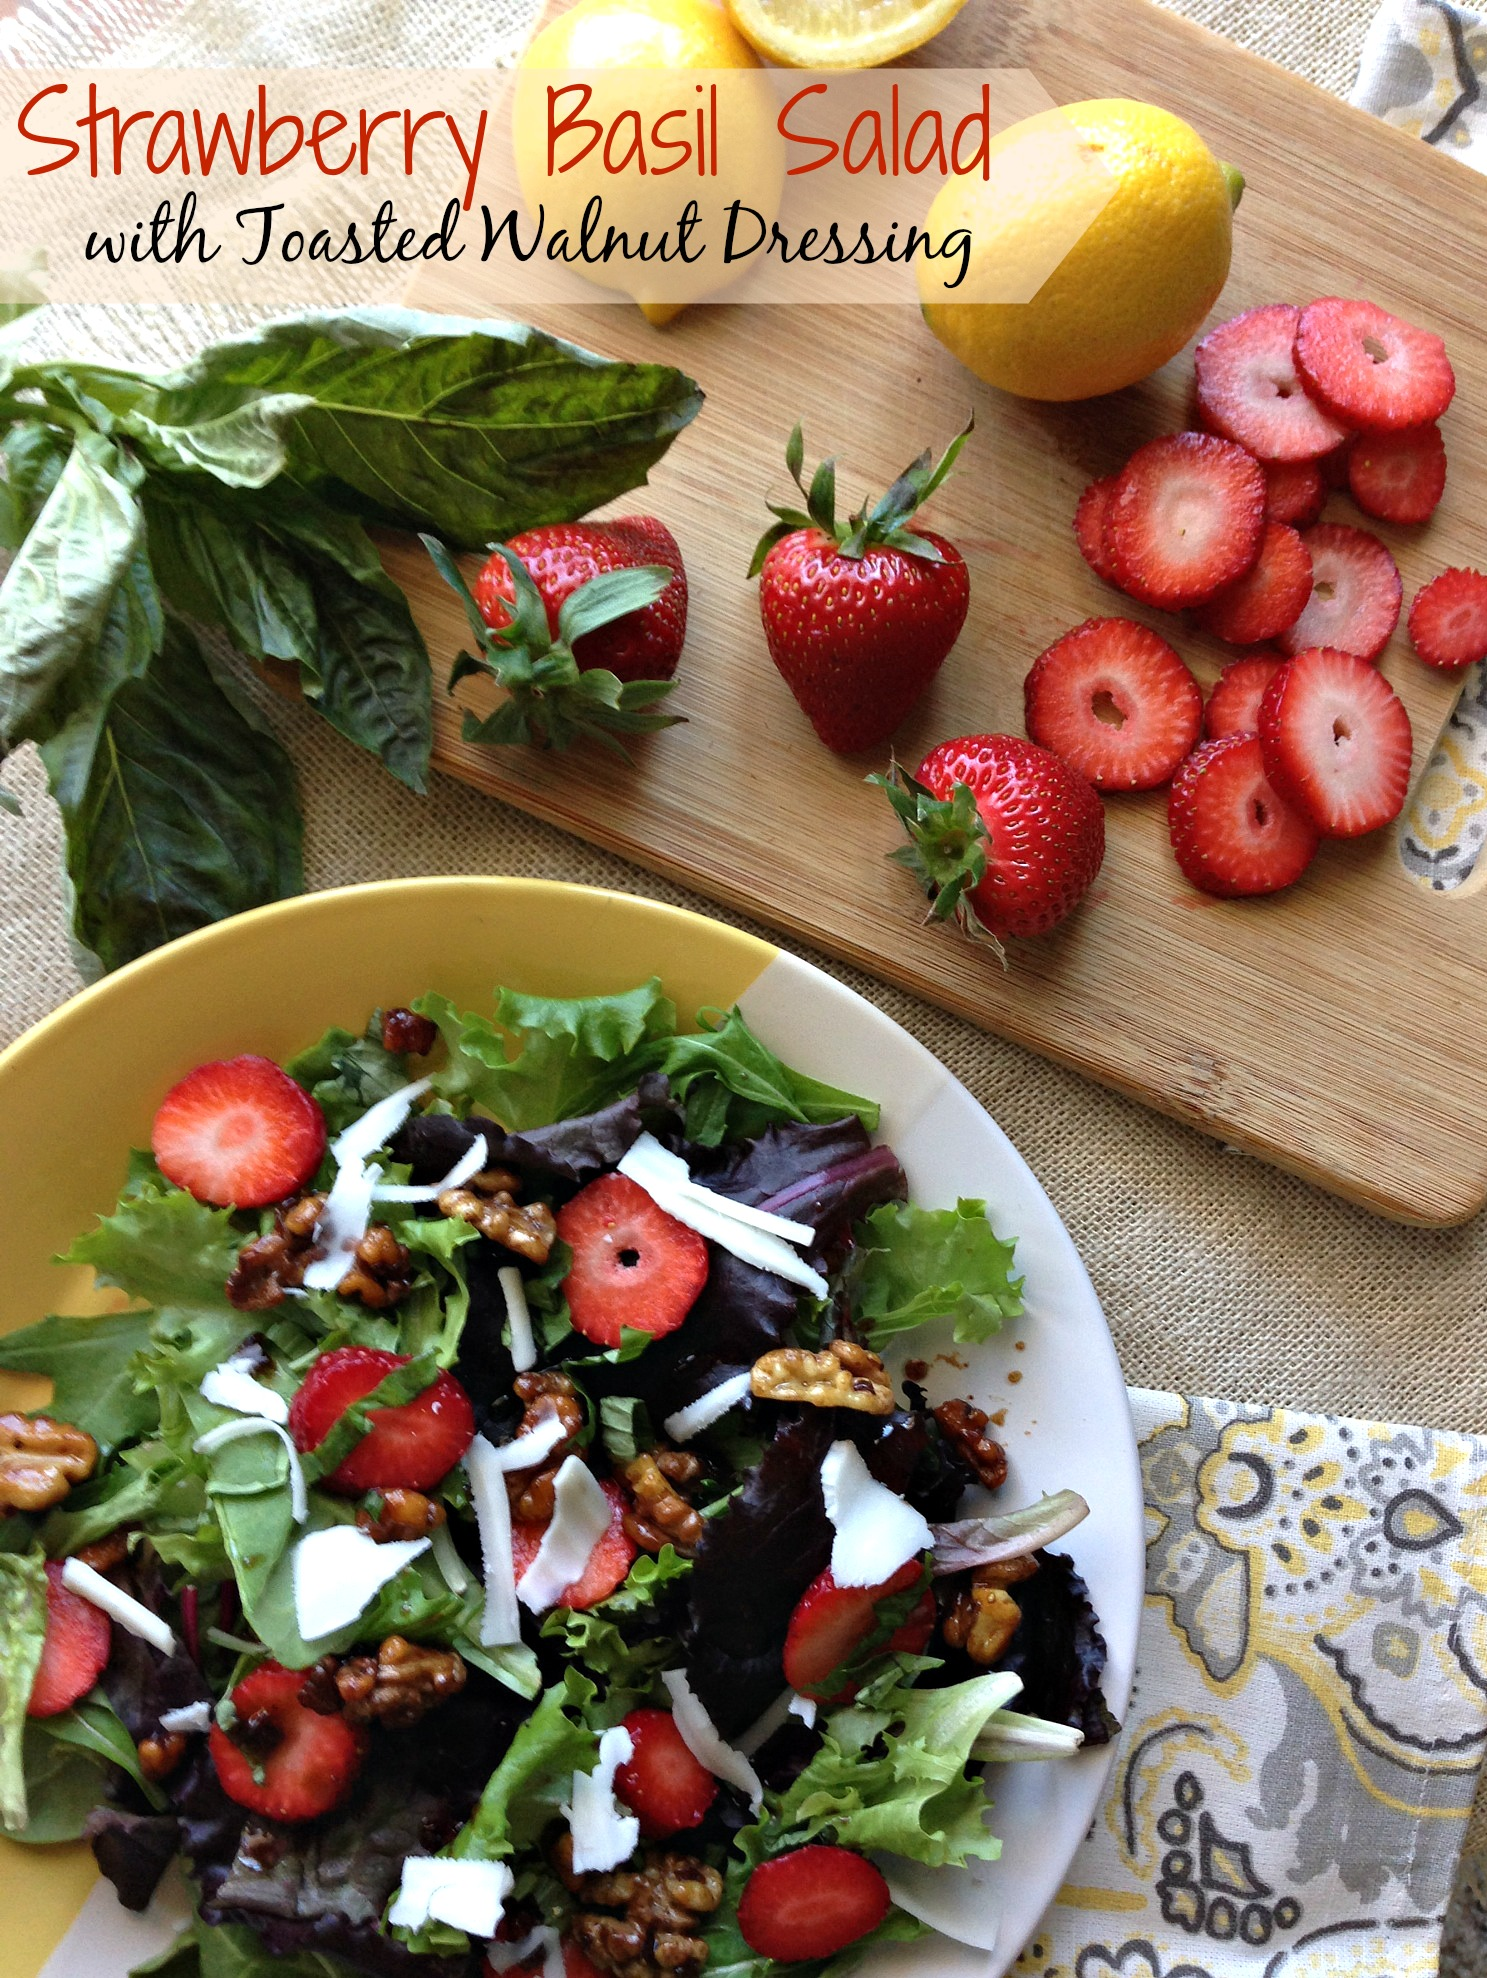 Strawberry Basil Salad with Toasted Walnut Dressing